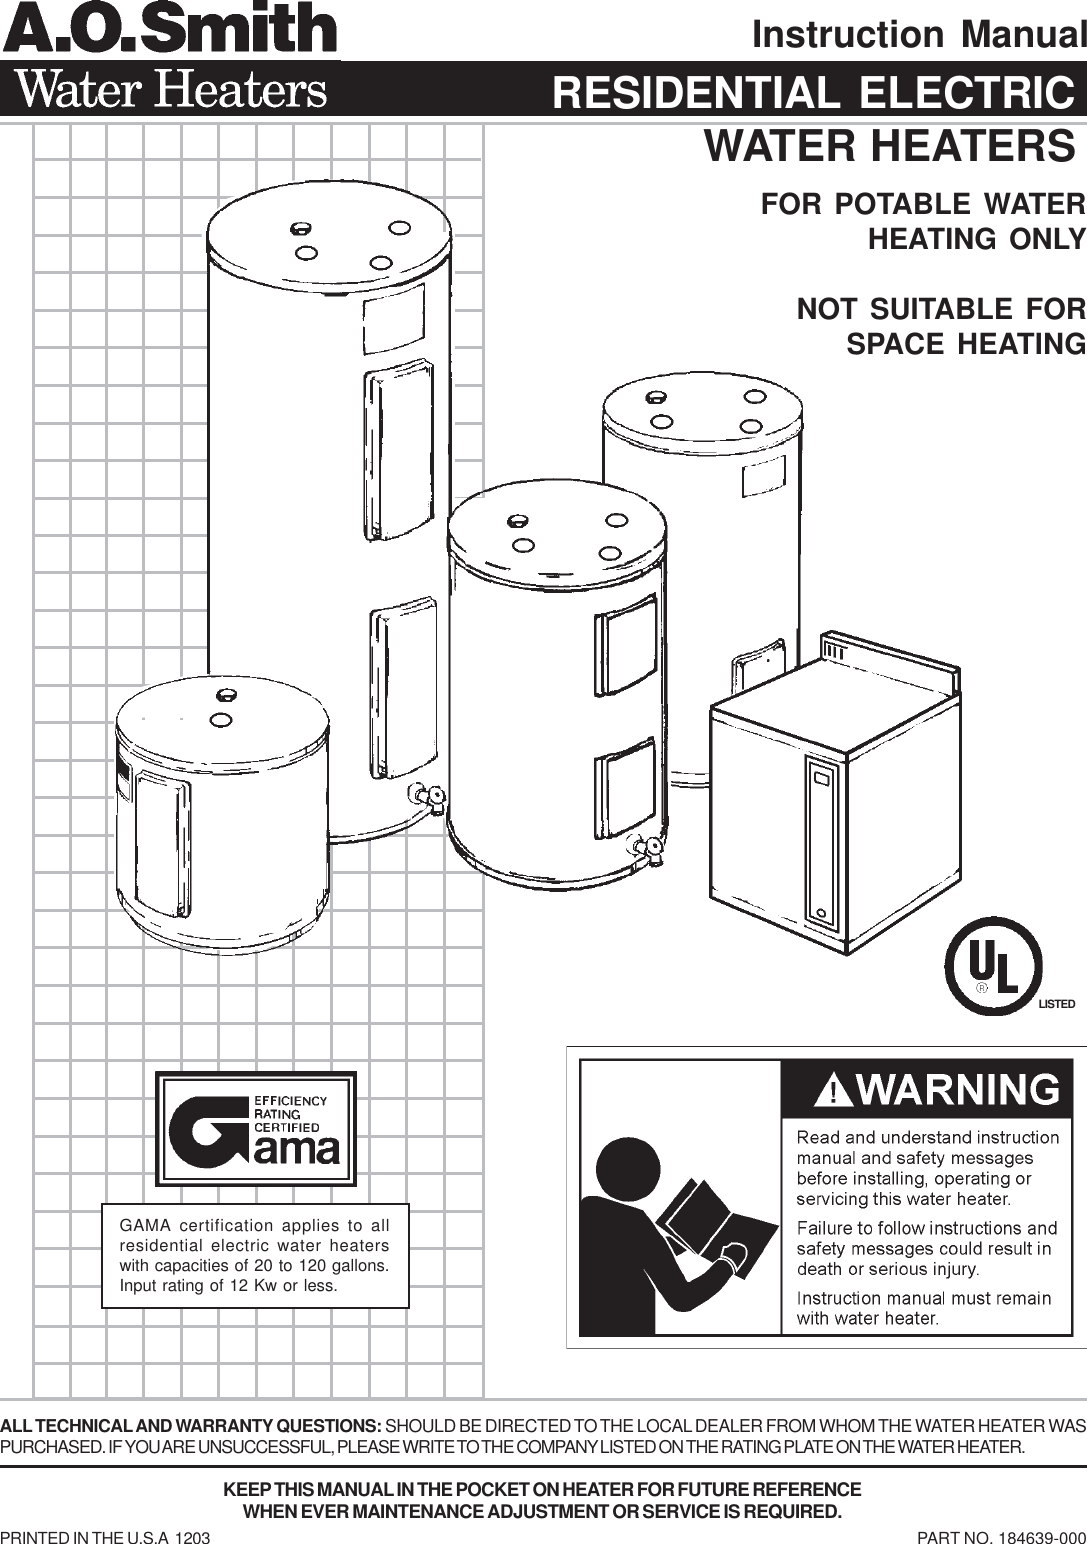 a o smith water heaters instruction manual residential